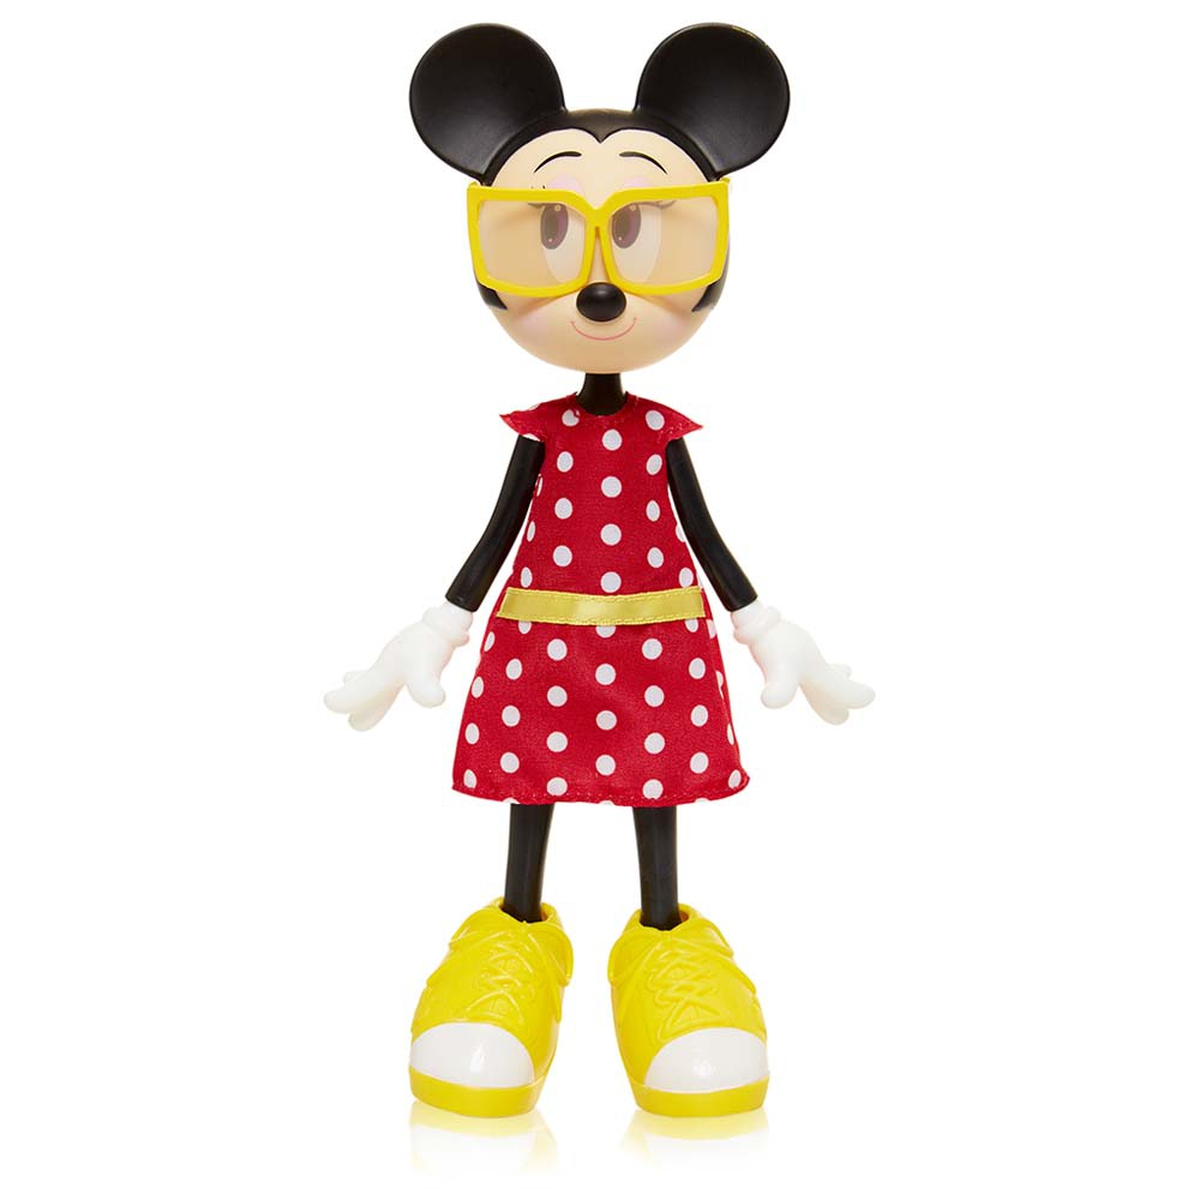 Disney Minnie Mouse Poseable Doll - Ravishing Red Outfit